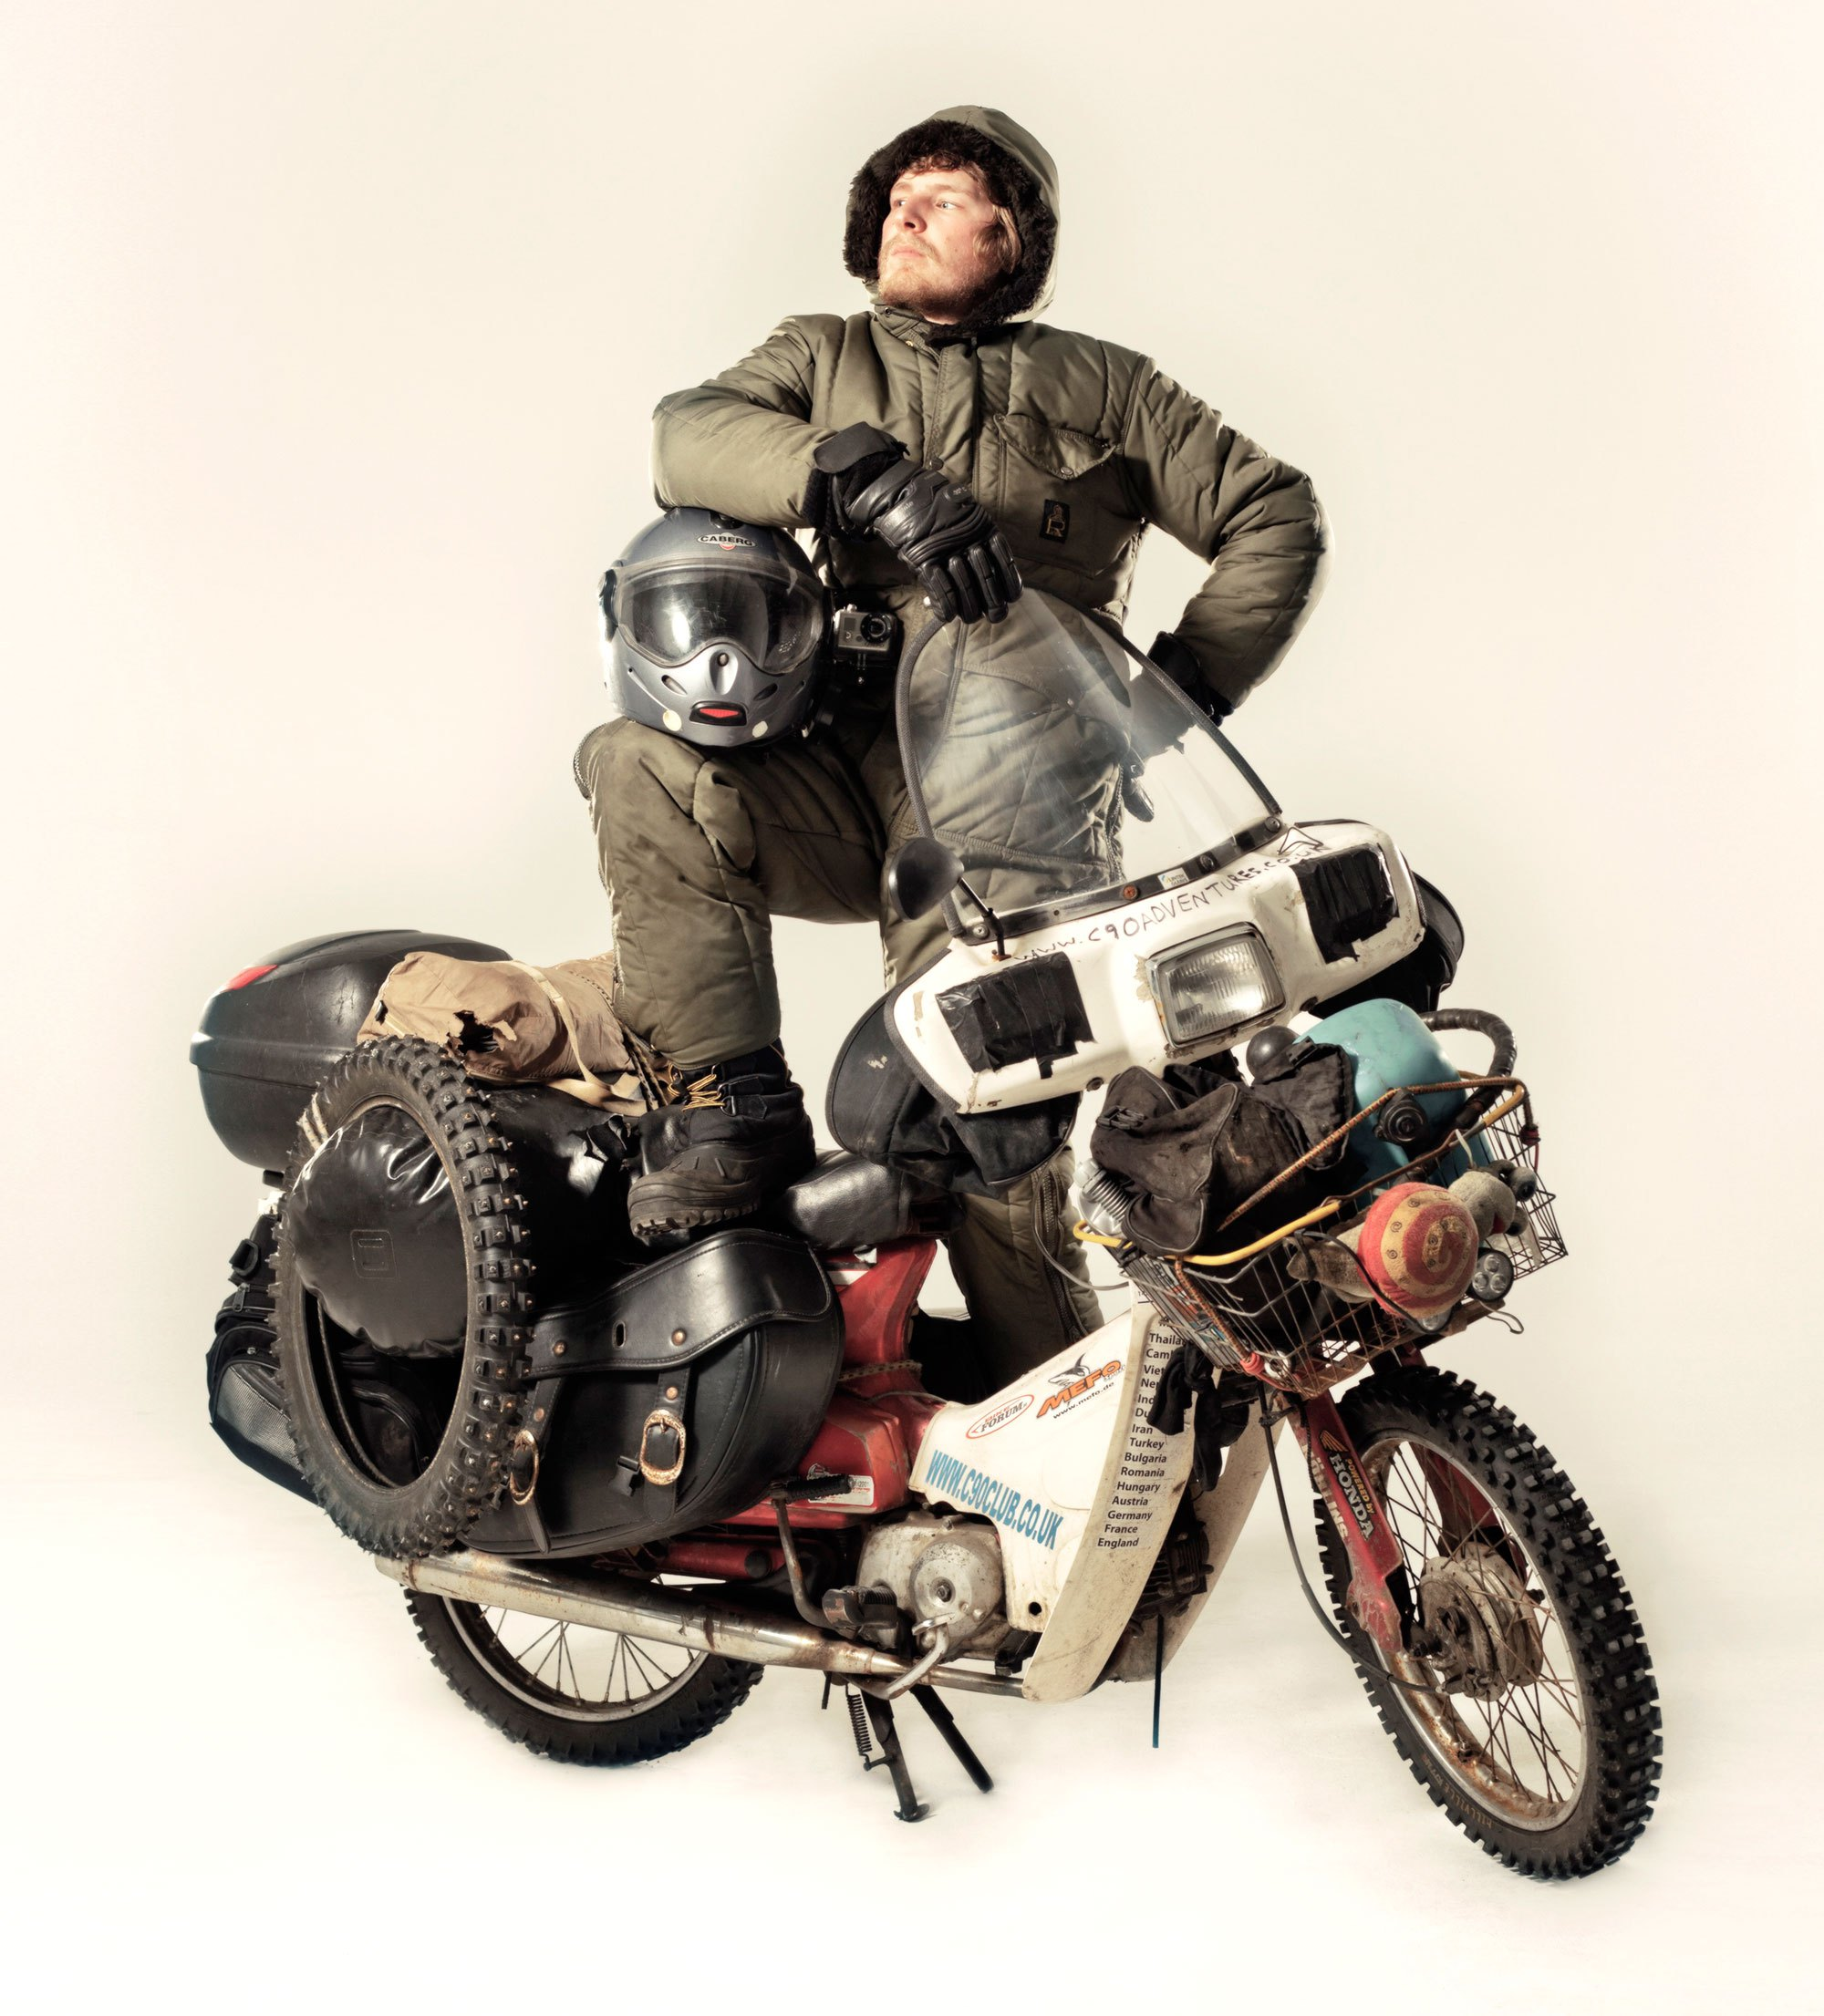 Ed March - The adventurer and traveller, known for touring round the world on a Honda c90, is collaborating in the project.Ed estimates he has ridden 110,000 miles in 36 countries all on a Honda C90 across some of the most remote and inaccessible terrain in the world.Ed brings an unsurpassed level of understanding of all the bikes' potential, features and flaws. Making him the perfect collaborator.